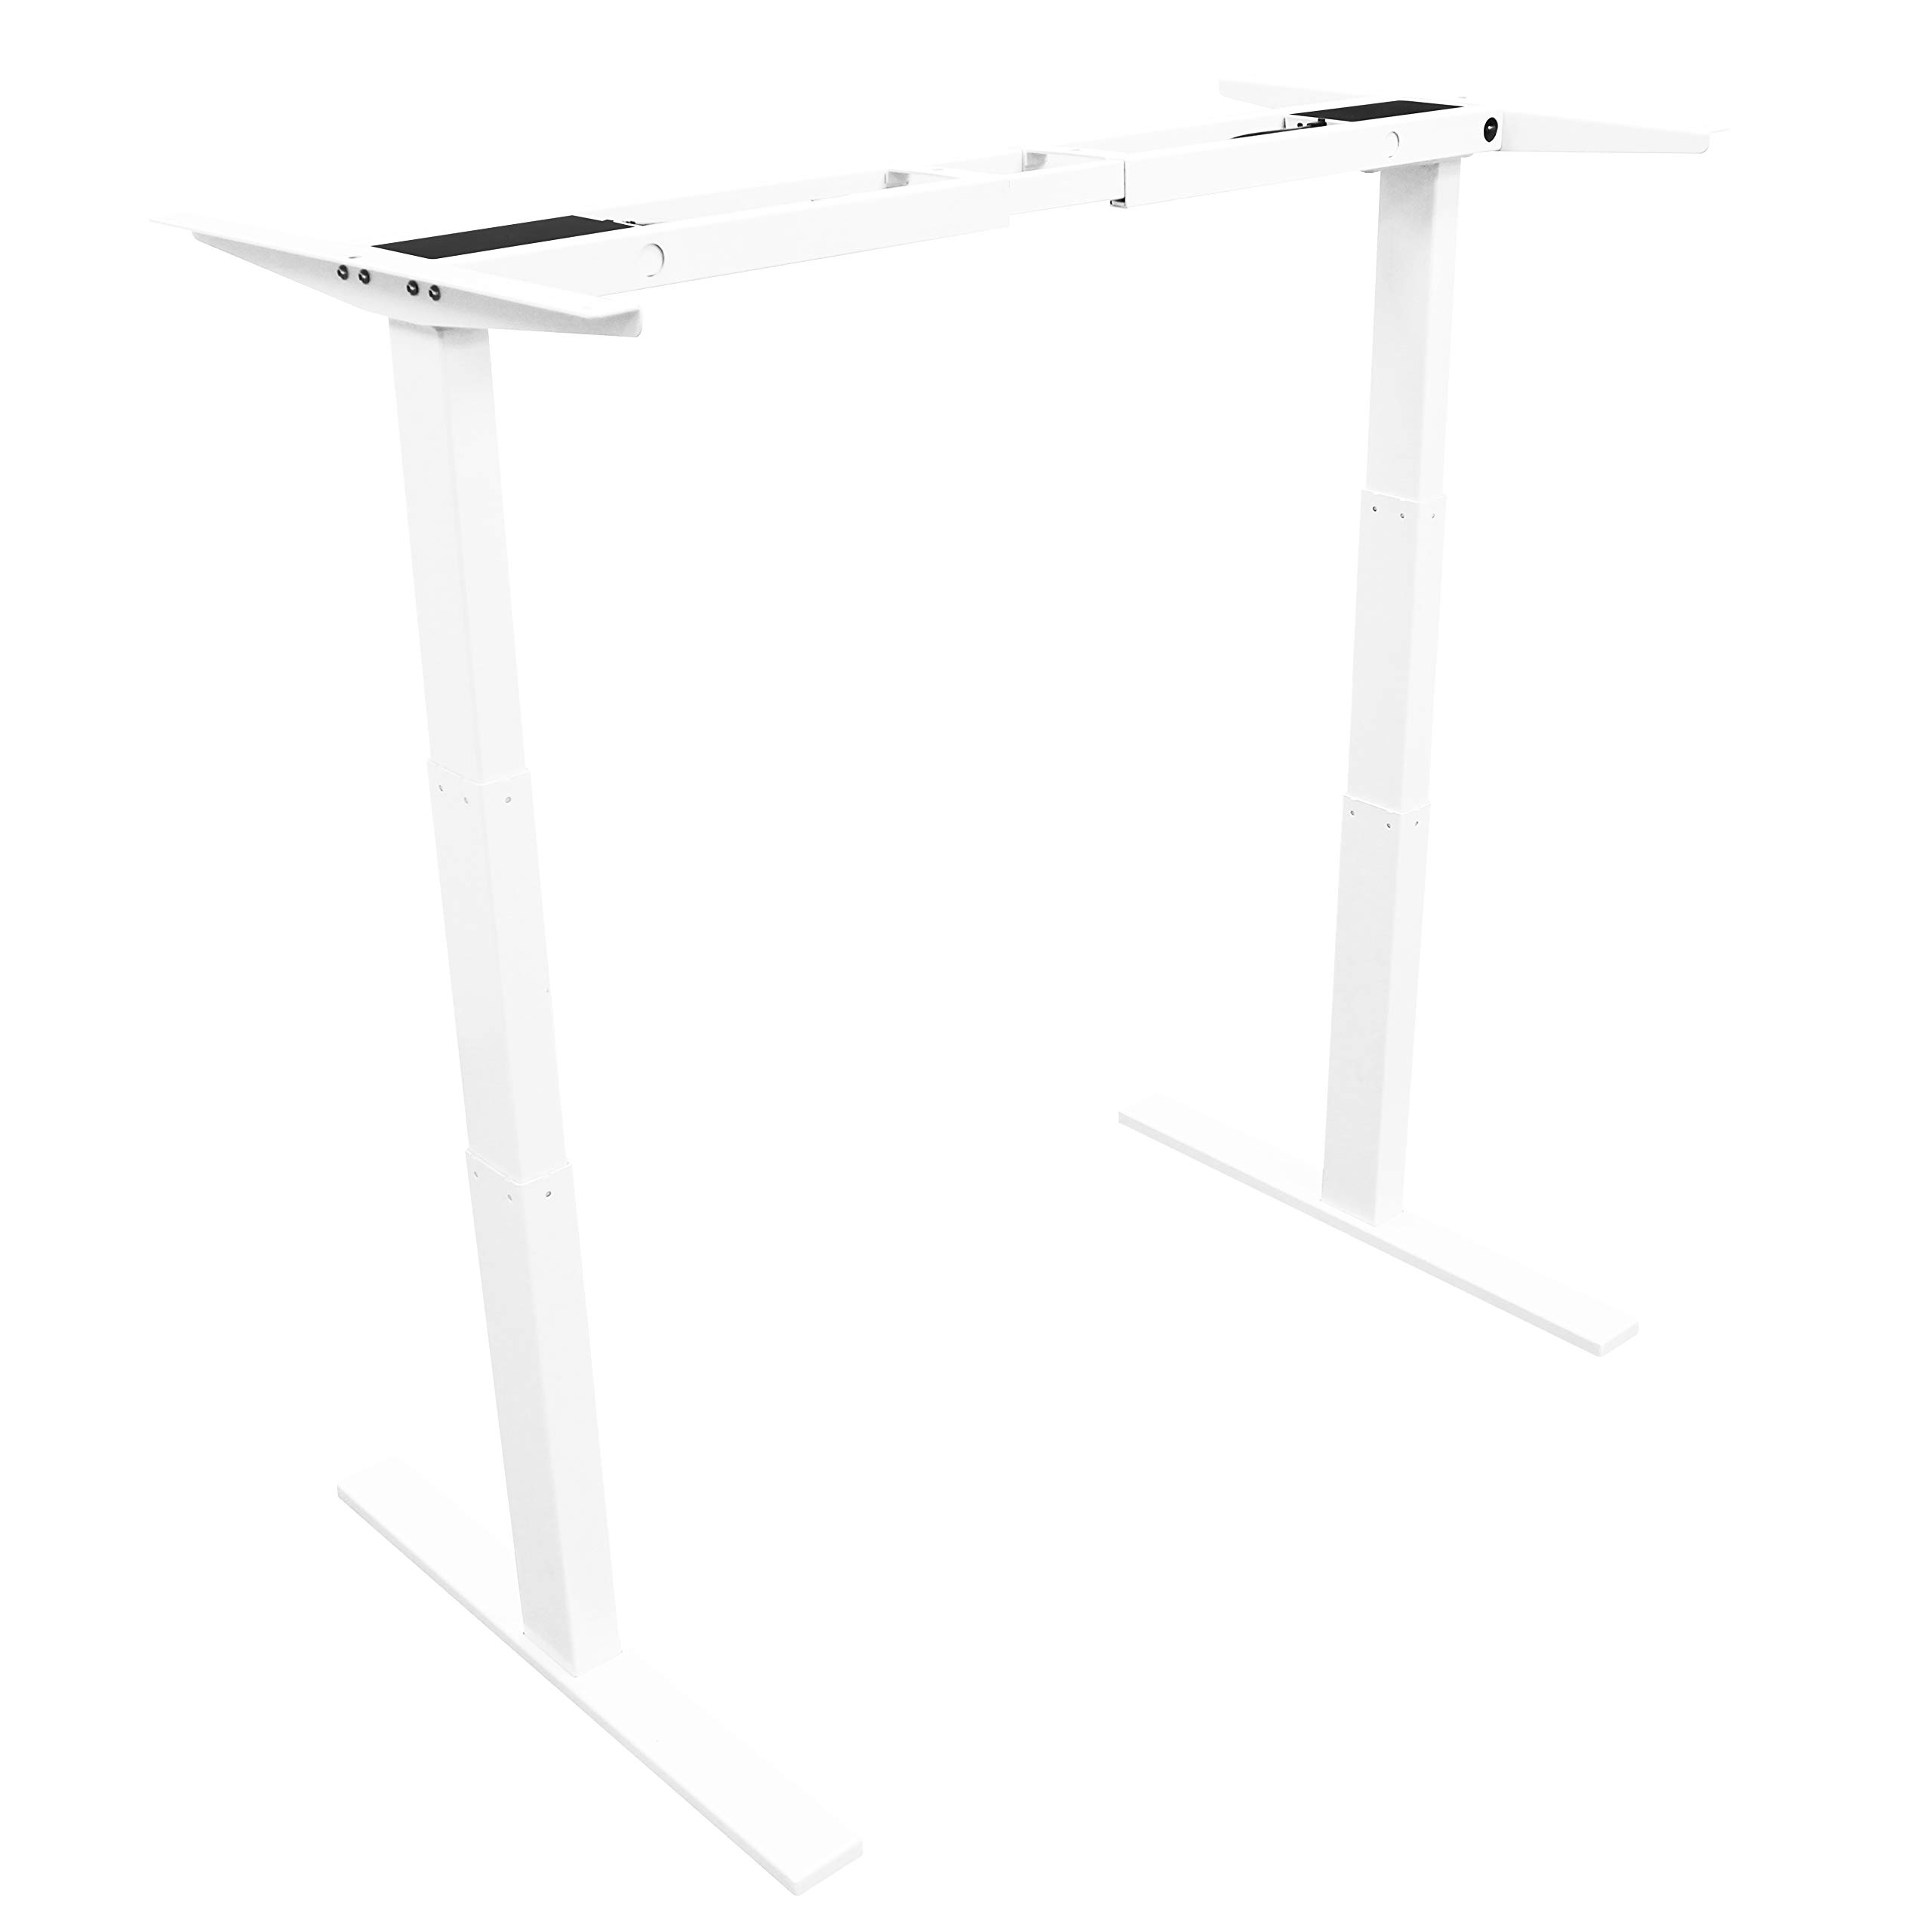 August USA White Desk Electric Motorized Self-Adjusting Standing Desk Frame with Control Pad Memory Settings   360-lbs. Load Capacity by August USA